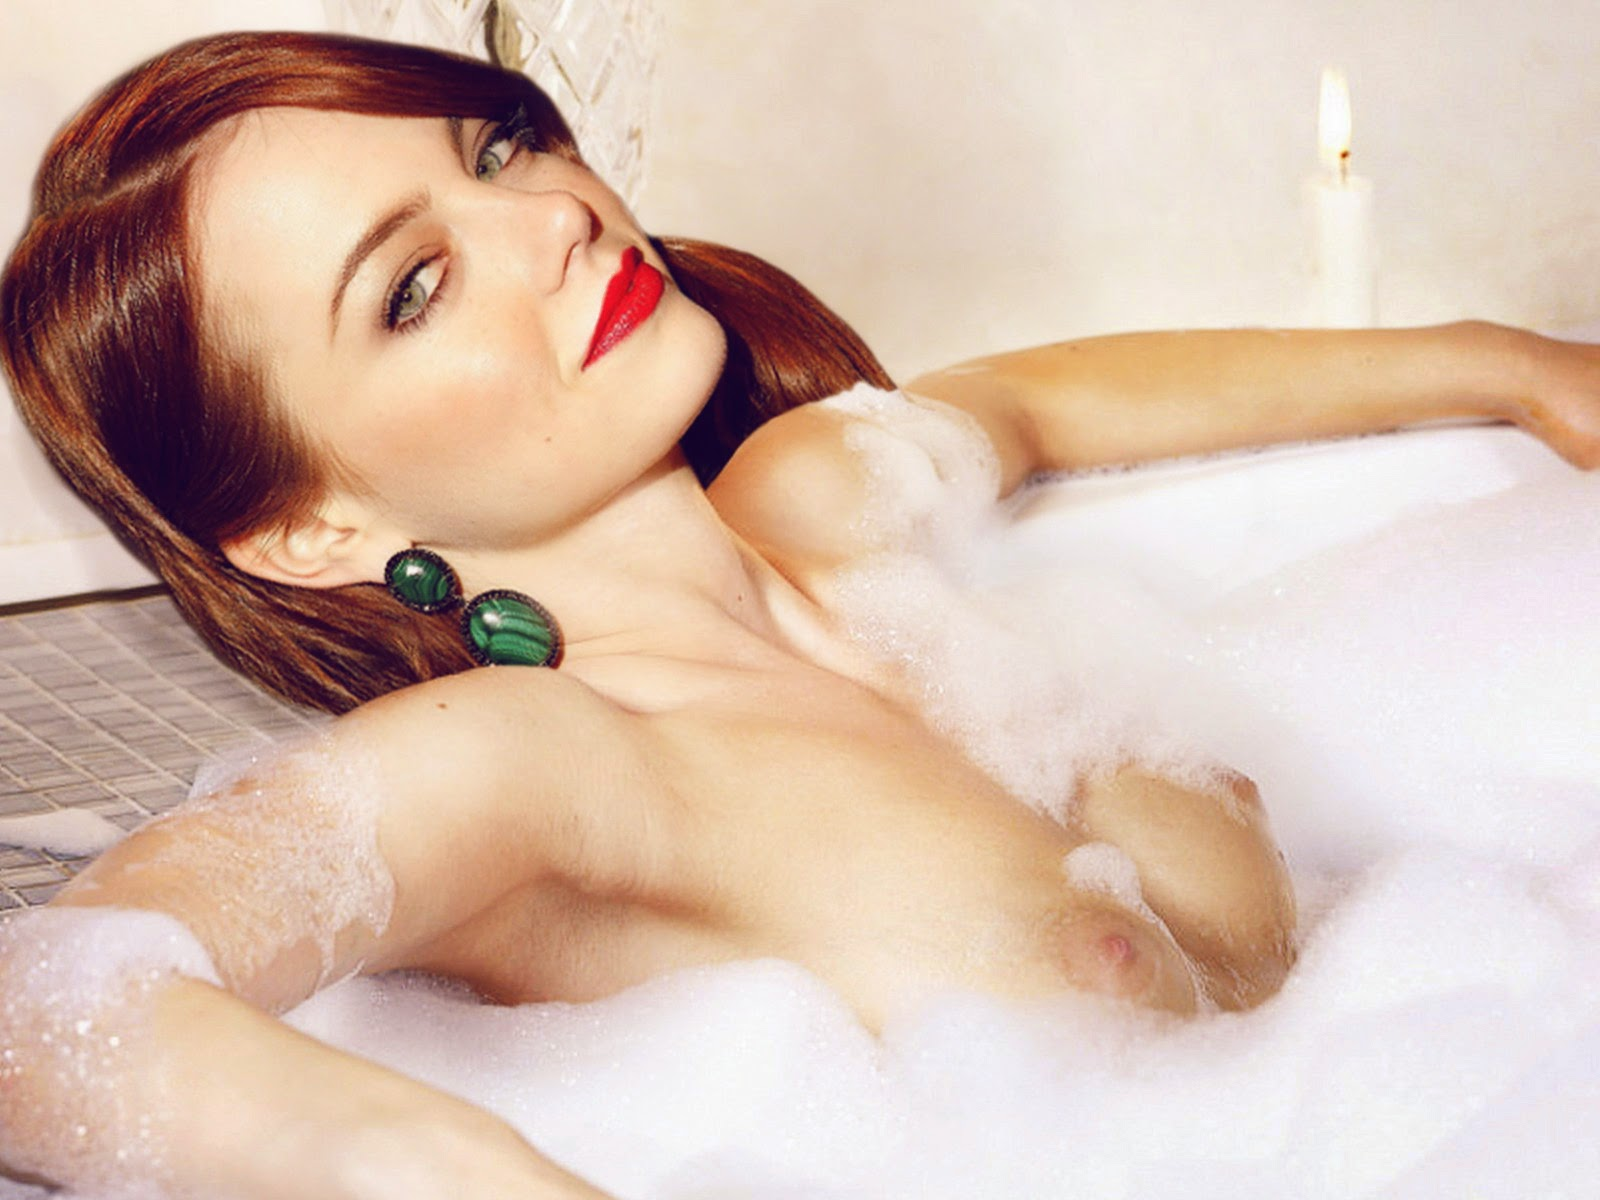 hot sexy emma stone nude naked hd pictures 2015 sexy emma stone naked ...